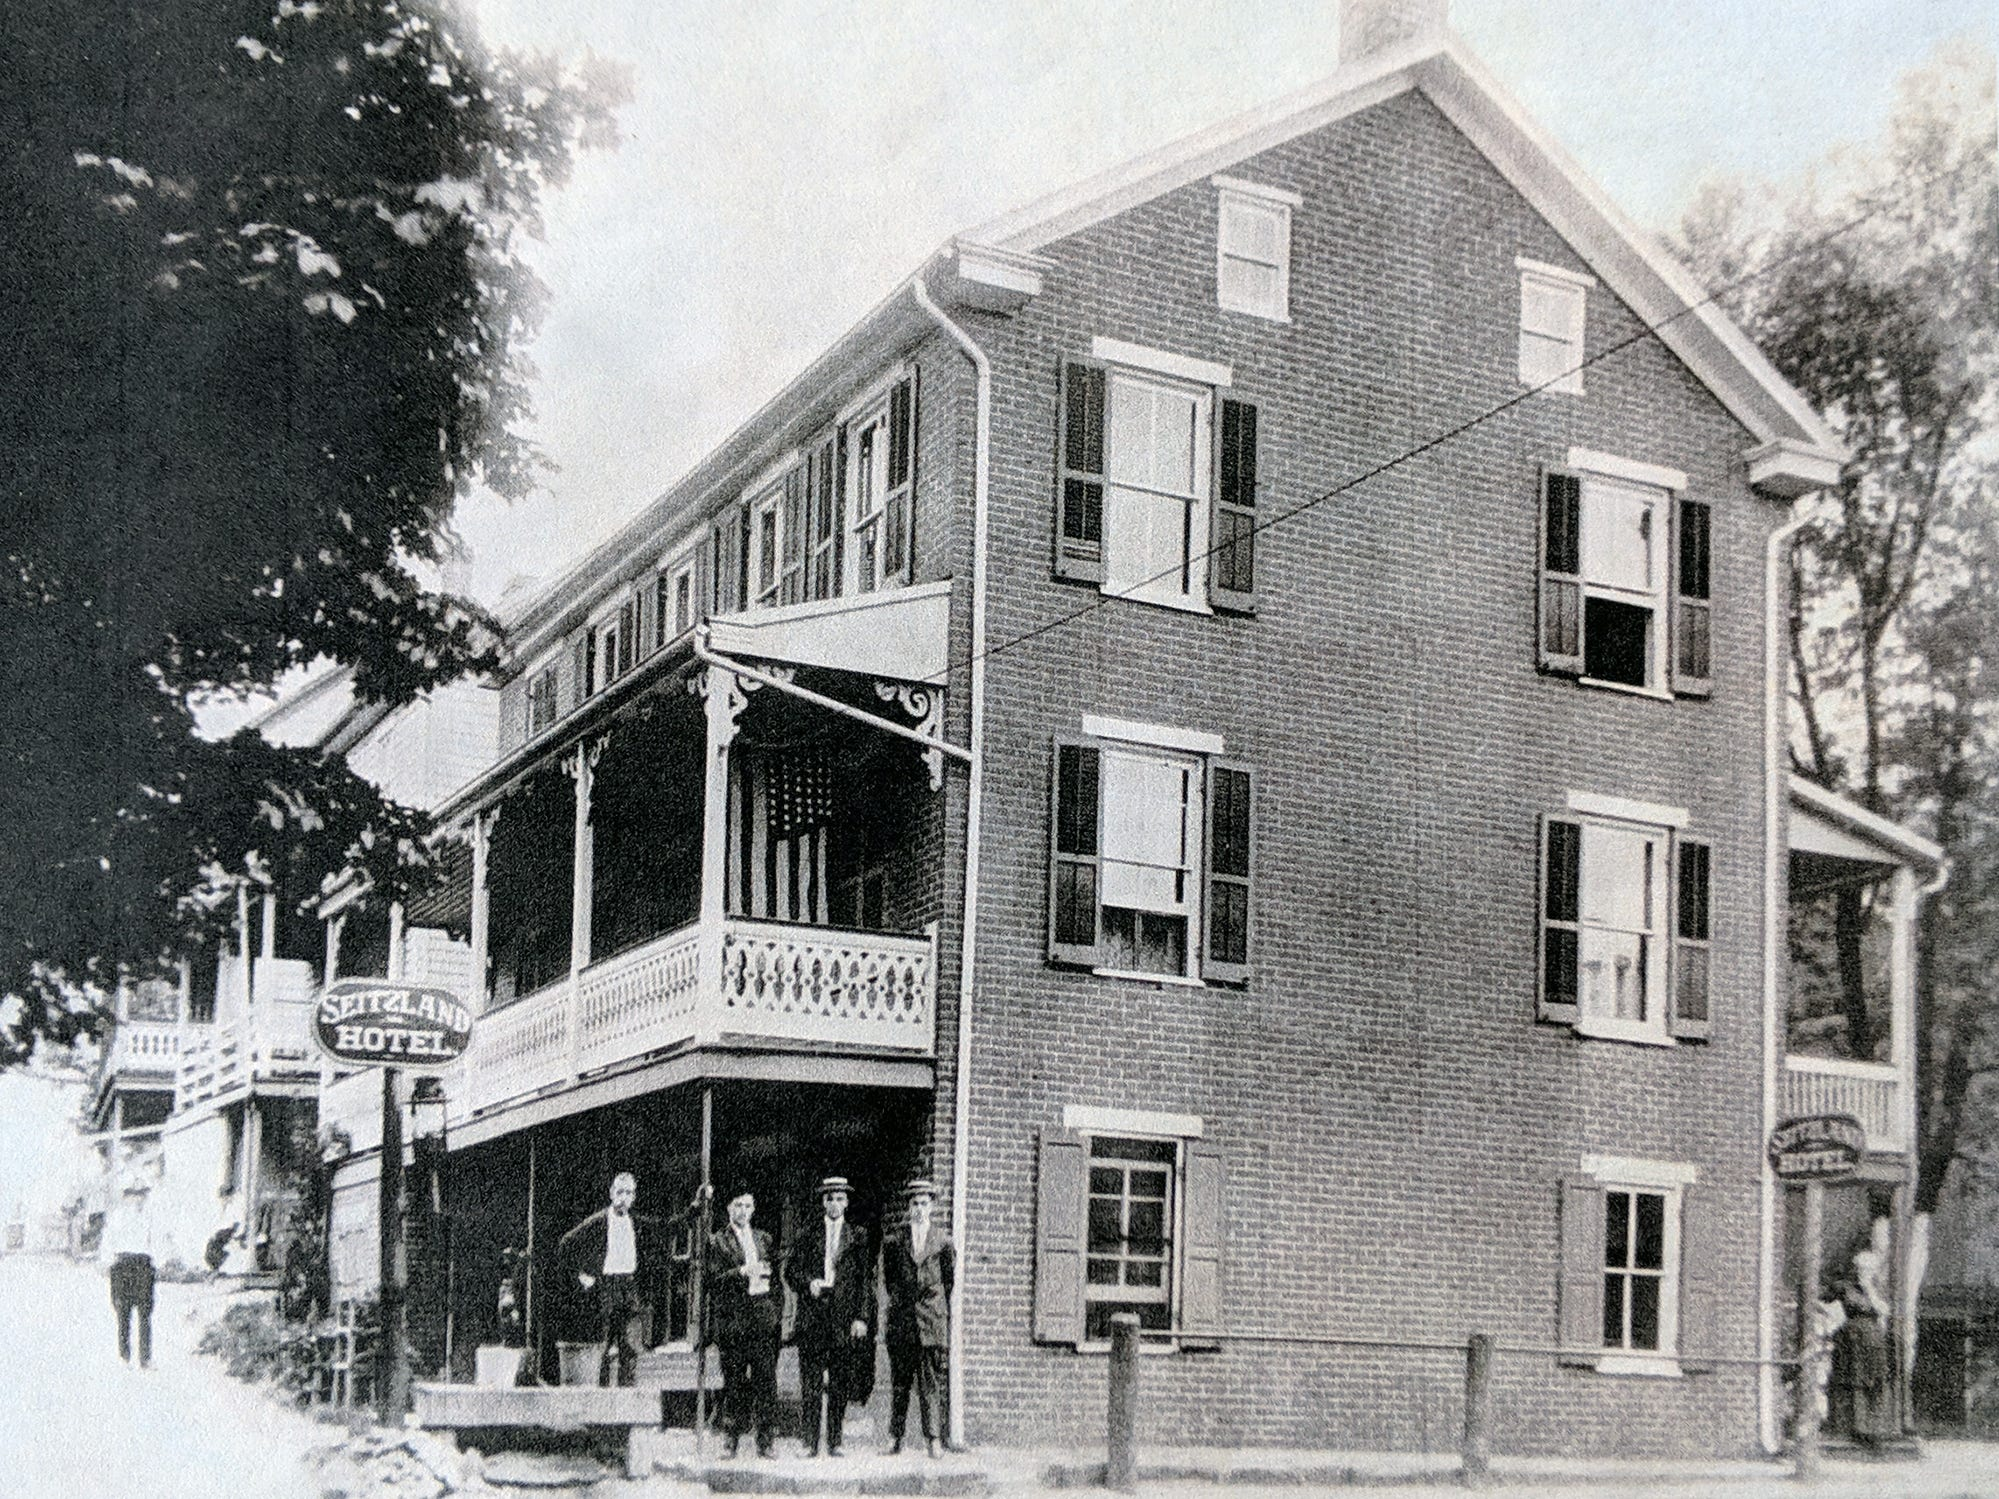 The Seitzland Hotel is shown as it looked in an undated photo. The former hotel is behind the renovated store and is currently apartments.